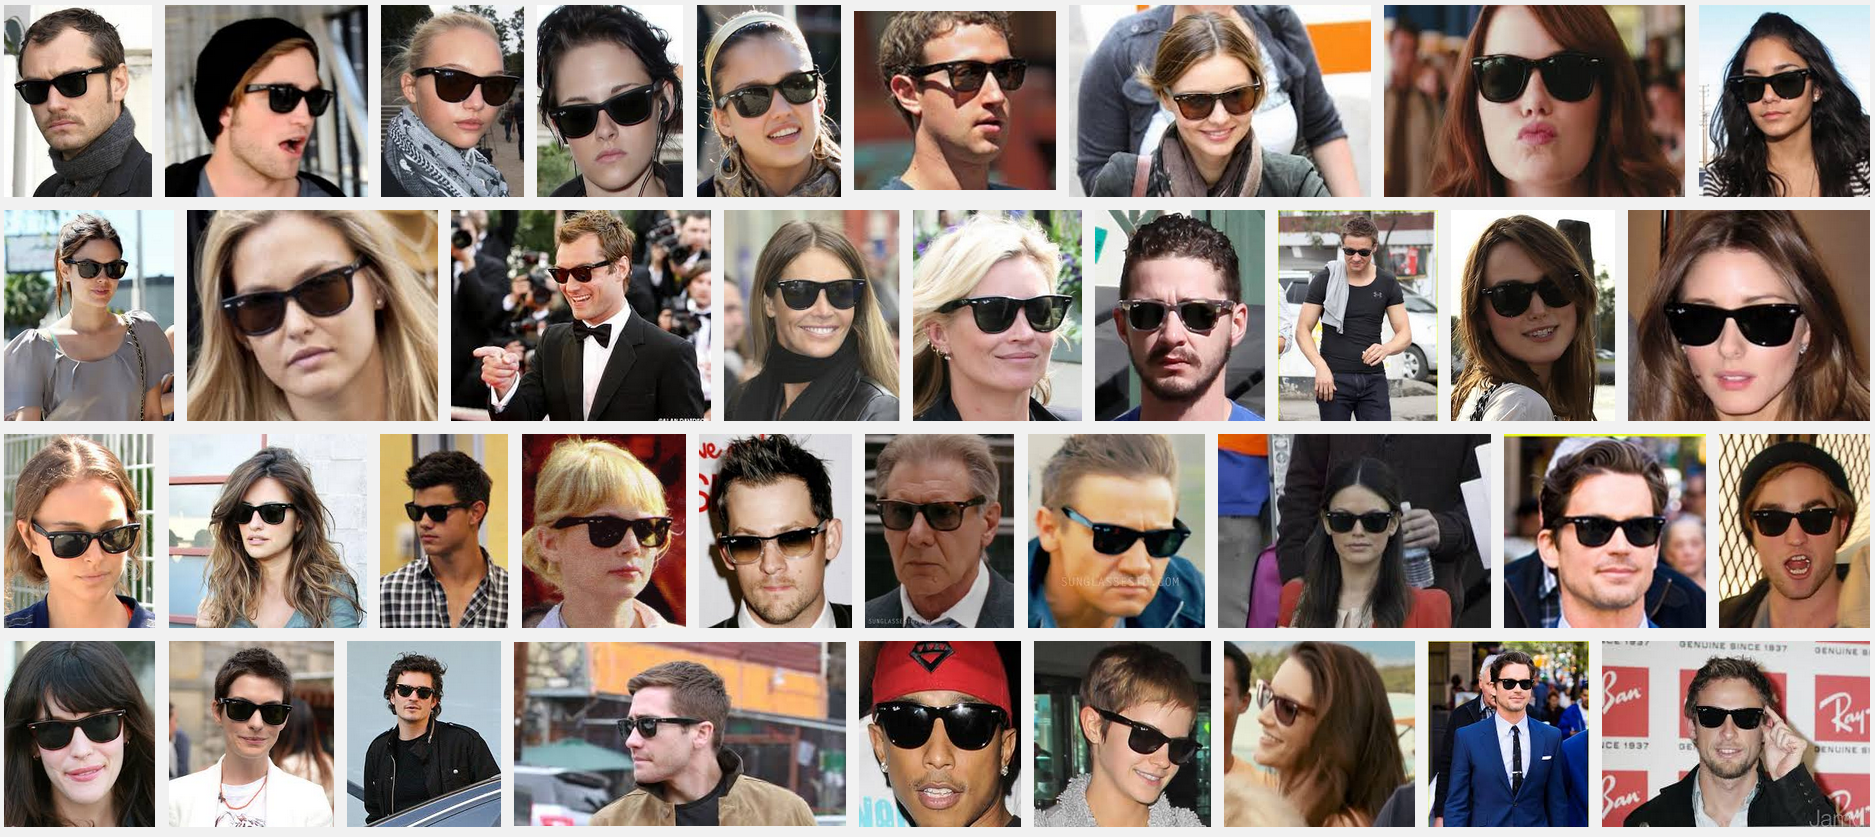 759e018552ab Kristen Stewart in Round Sunglasses at Cannes Film Festival is Pure ...